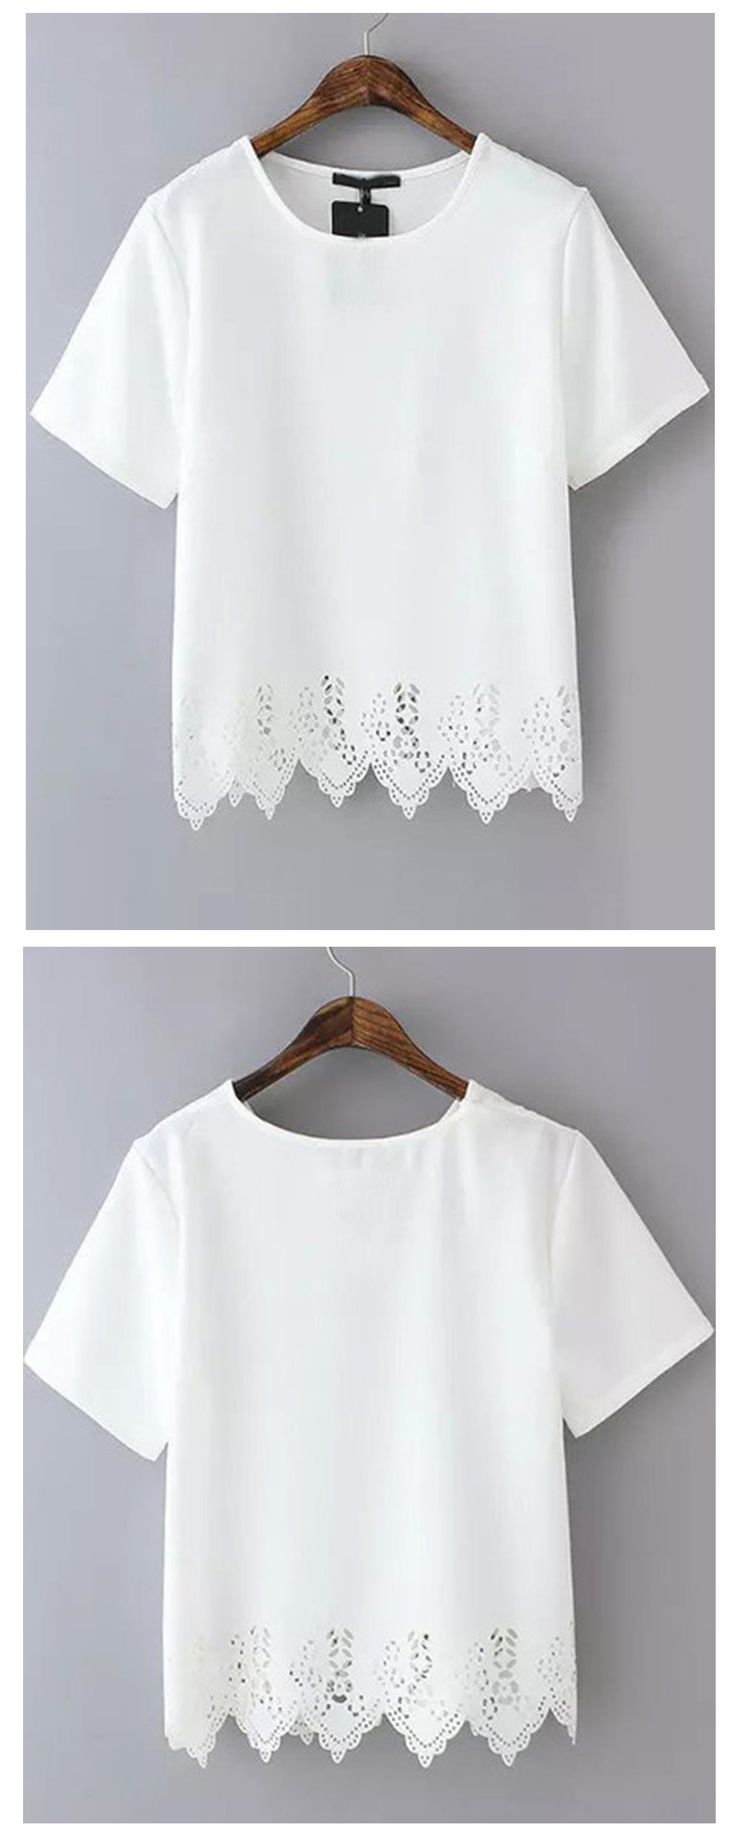 Chiffon T-Shirt with beautiful lace hem. Chiffon material is super soft for hot summer. Come for up to 60% off!